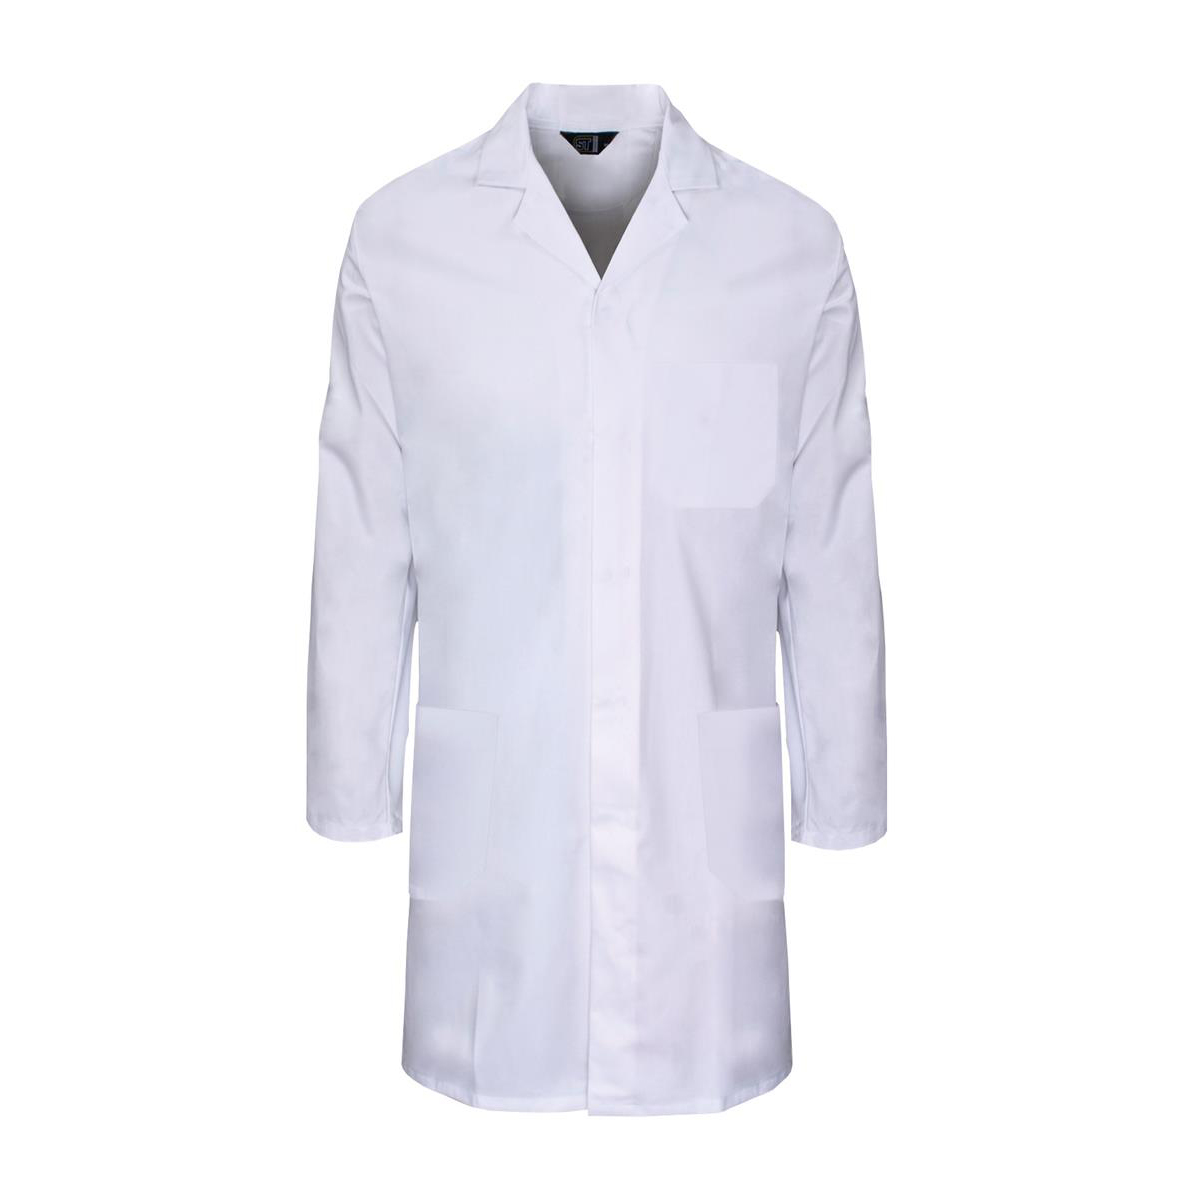 Supertouch Lab Coat Polycotton with 3 Pockets XXXLarge White Ref 57006 *Approx 3 Day Leadtime*